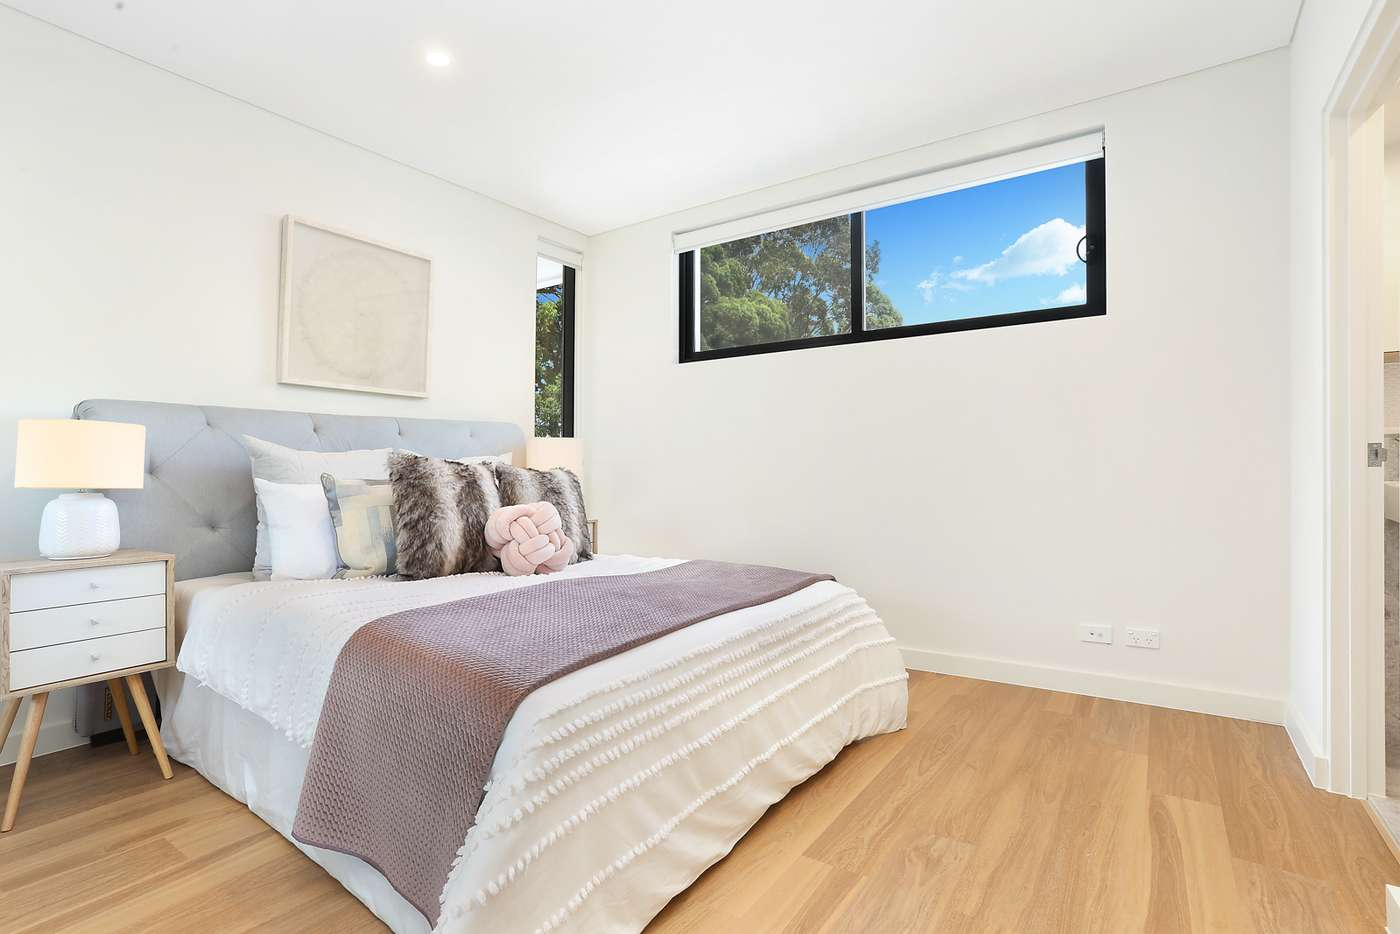 Fifth view of Homely apartment listing, 305/2 Murrell Street, Ashfield NSW 2131